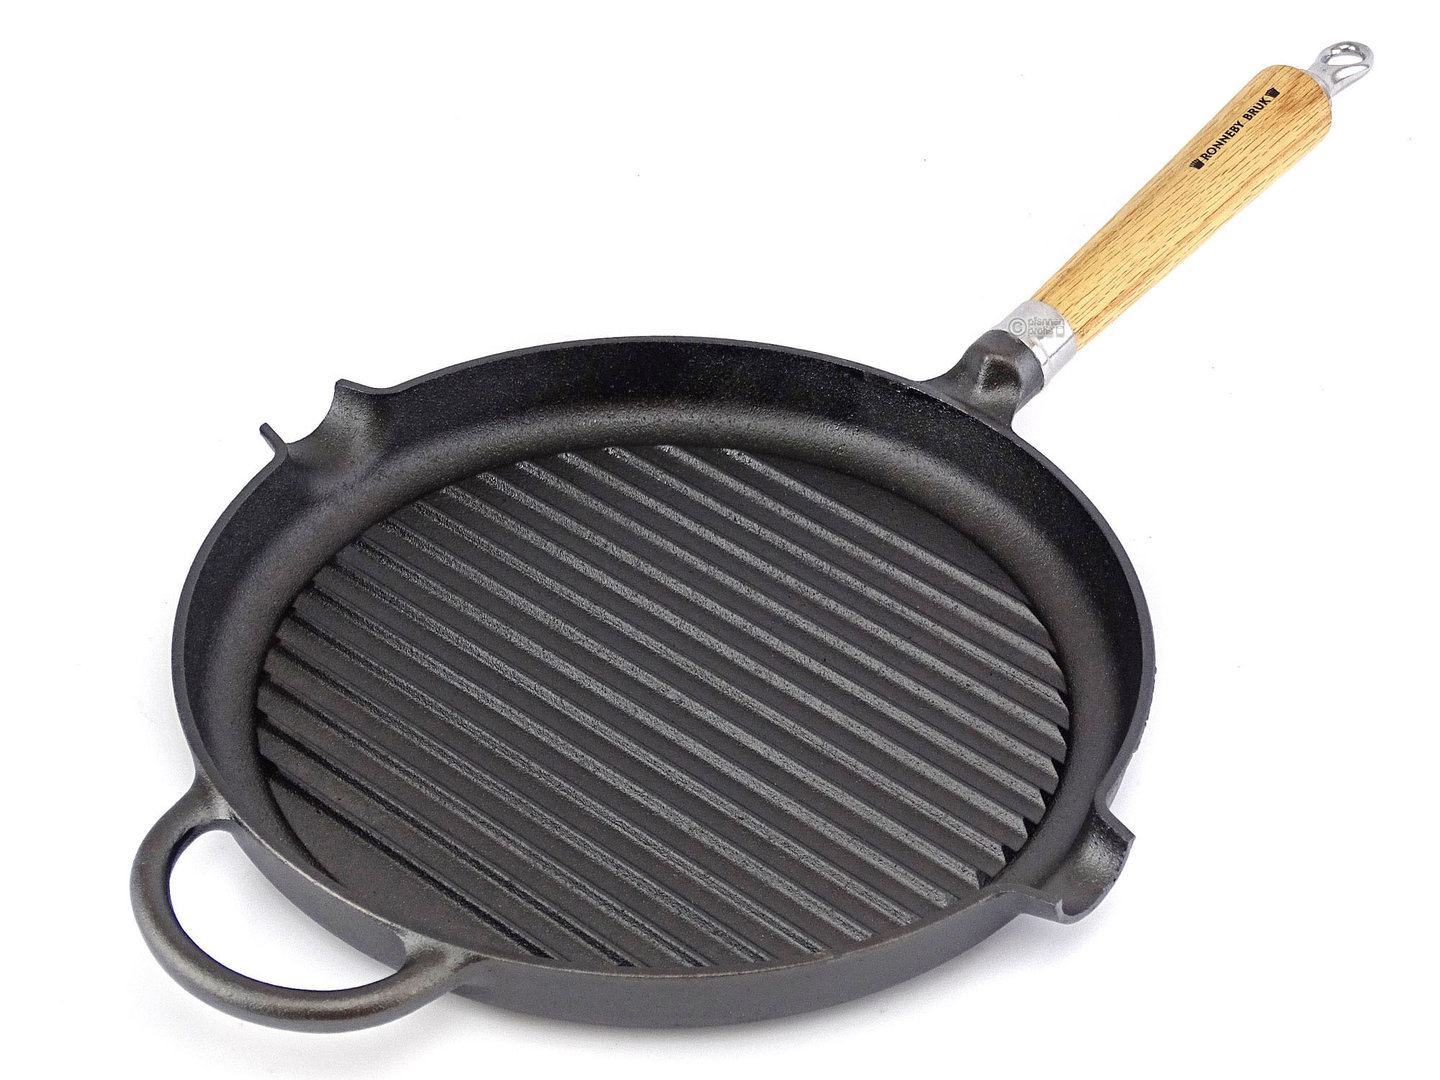 RONNEBY BRUK cast iron grill pan MAESTRO 28 cm oakwood handle, pre-seasoned